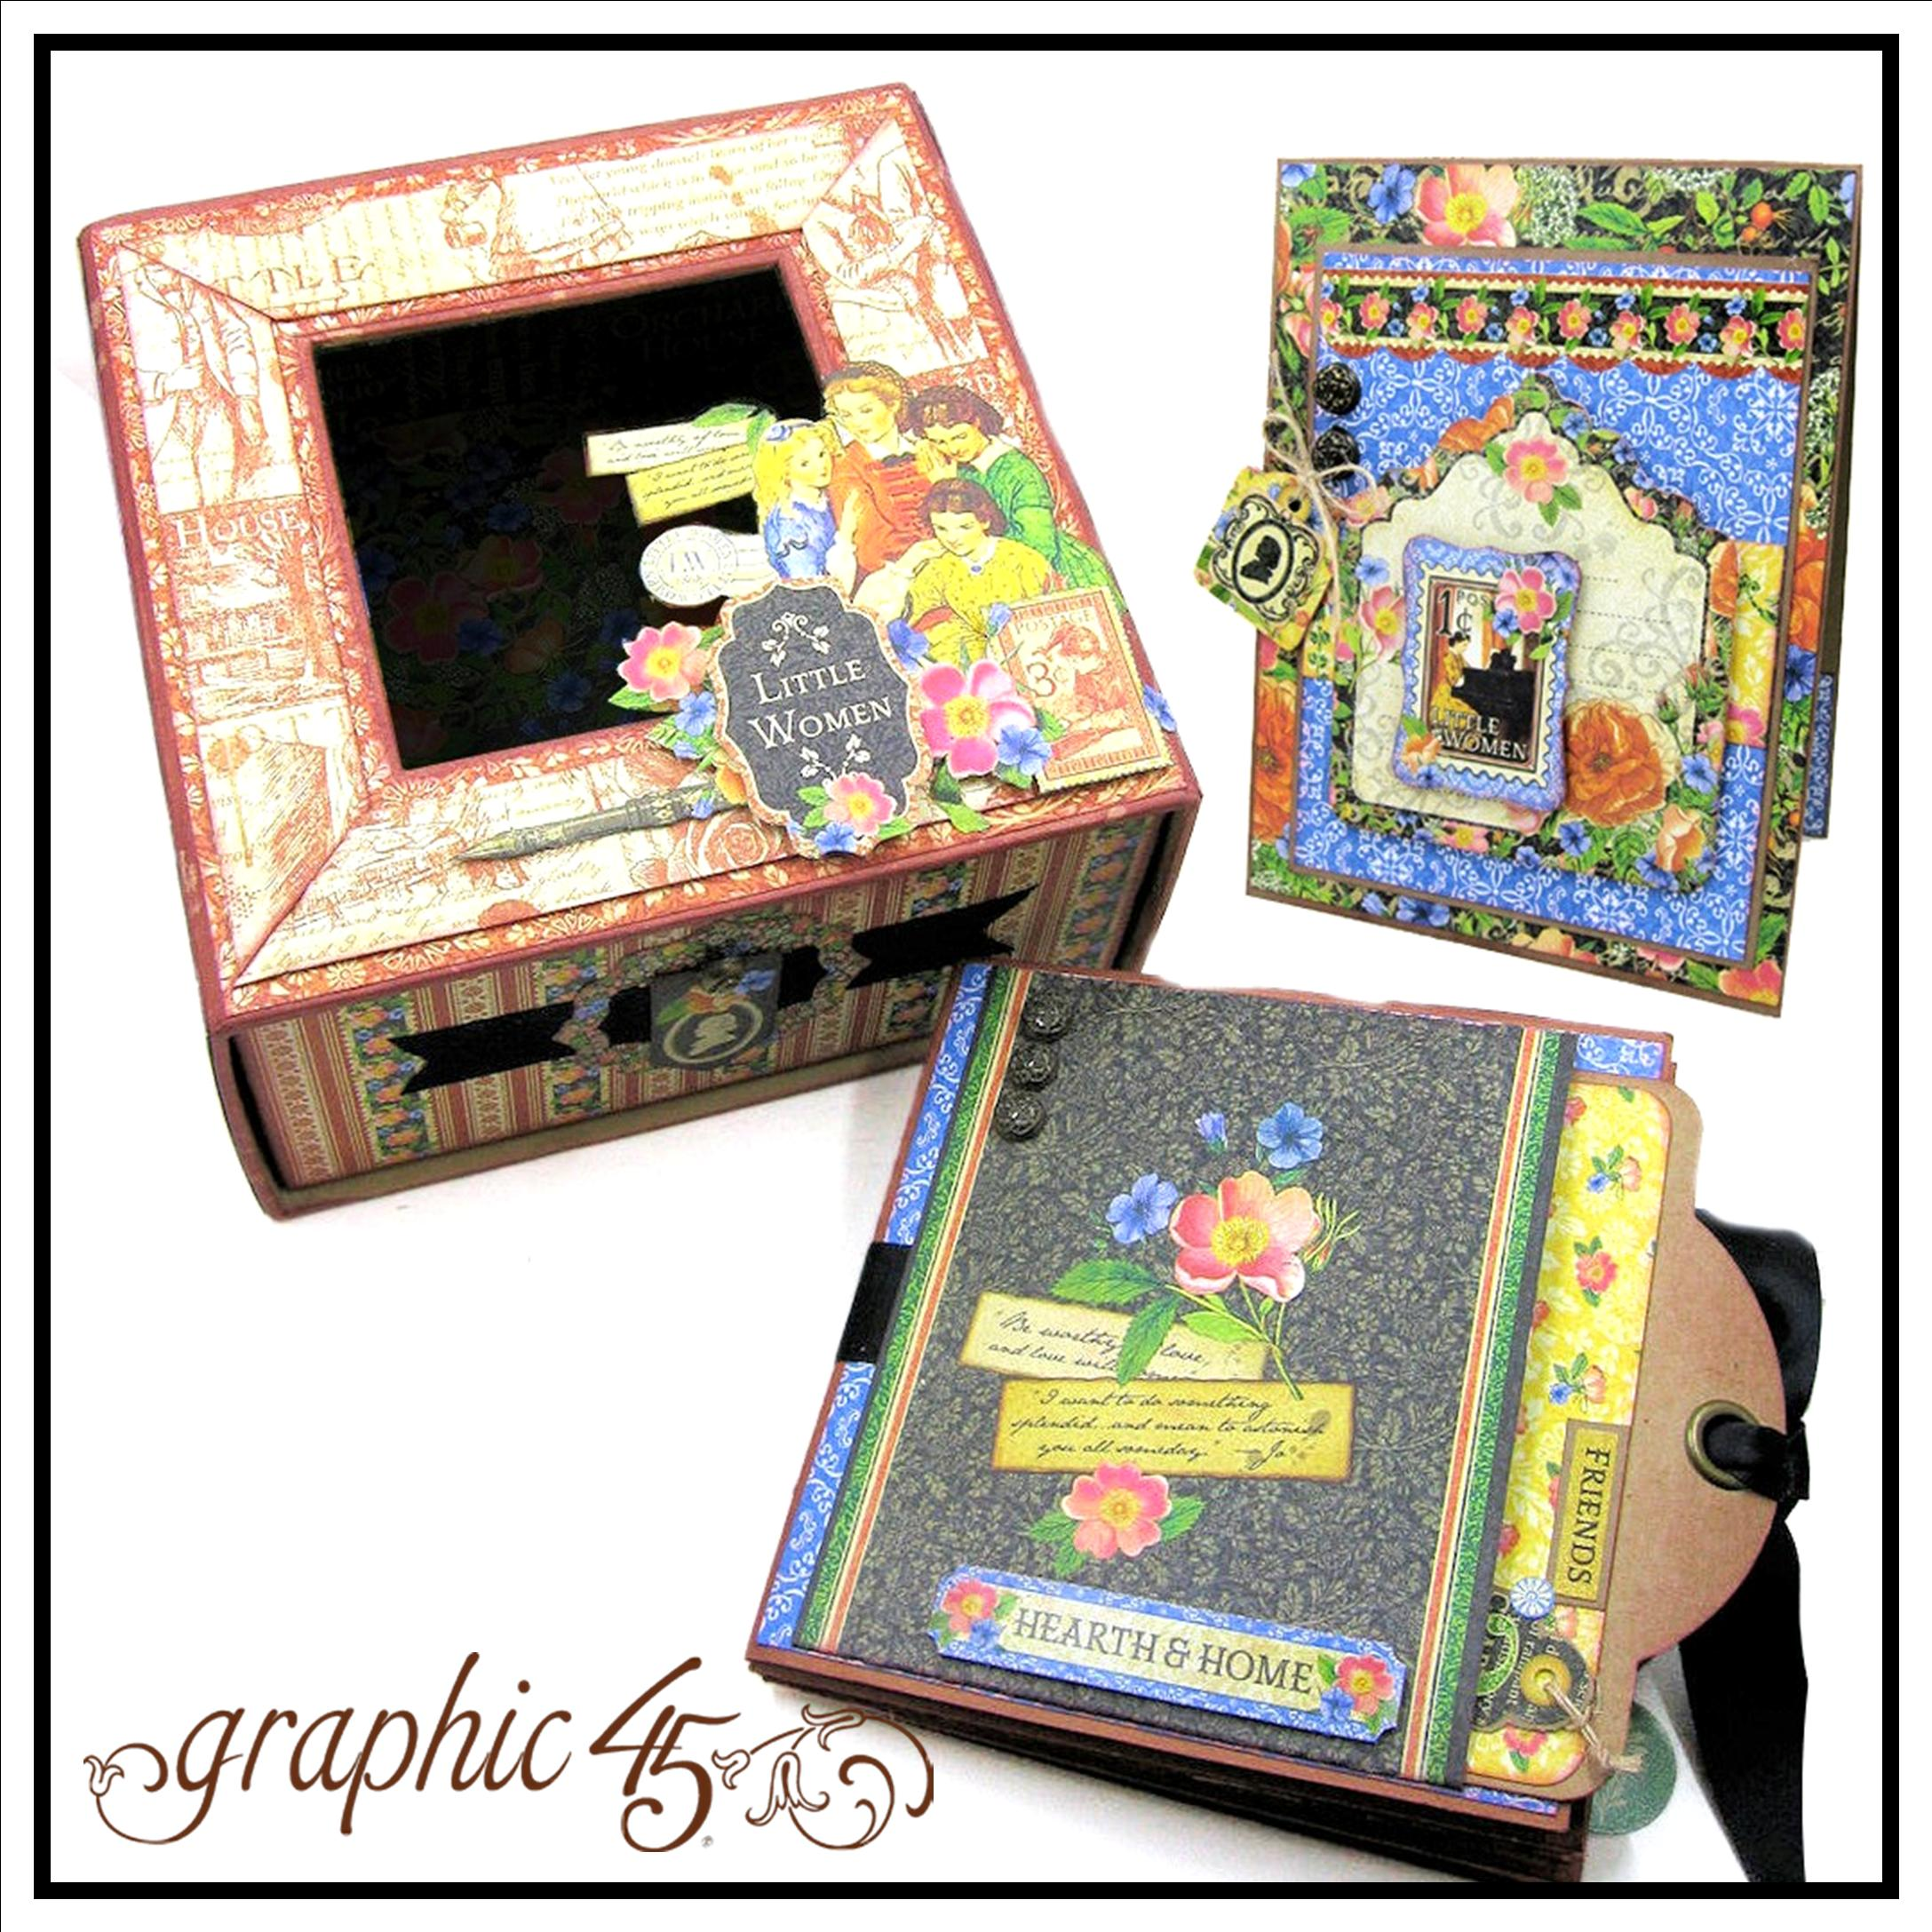 Little Women Folio Album Box